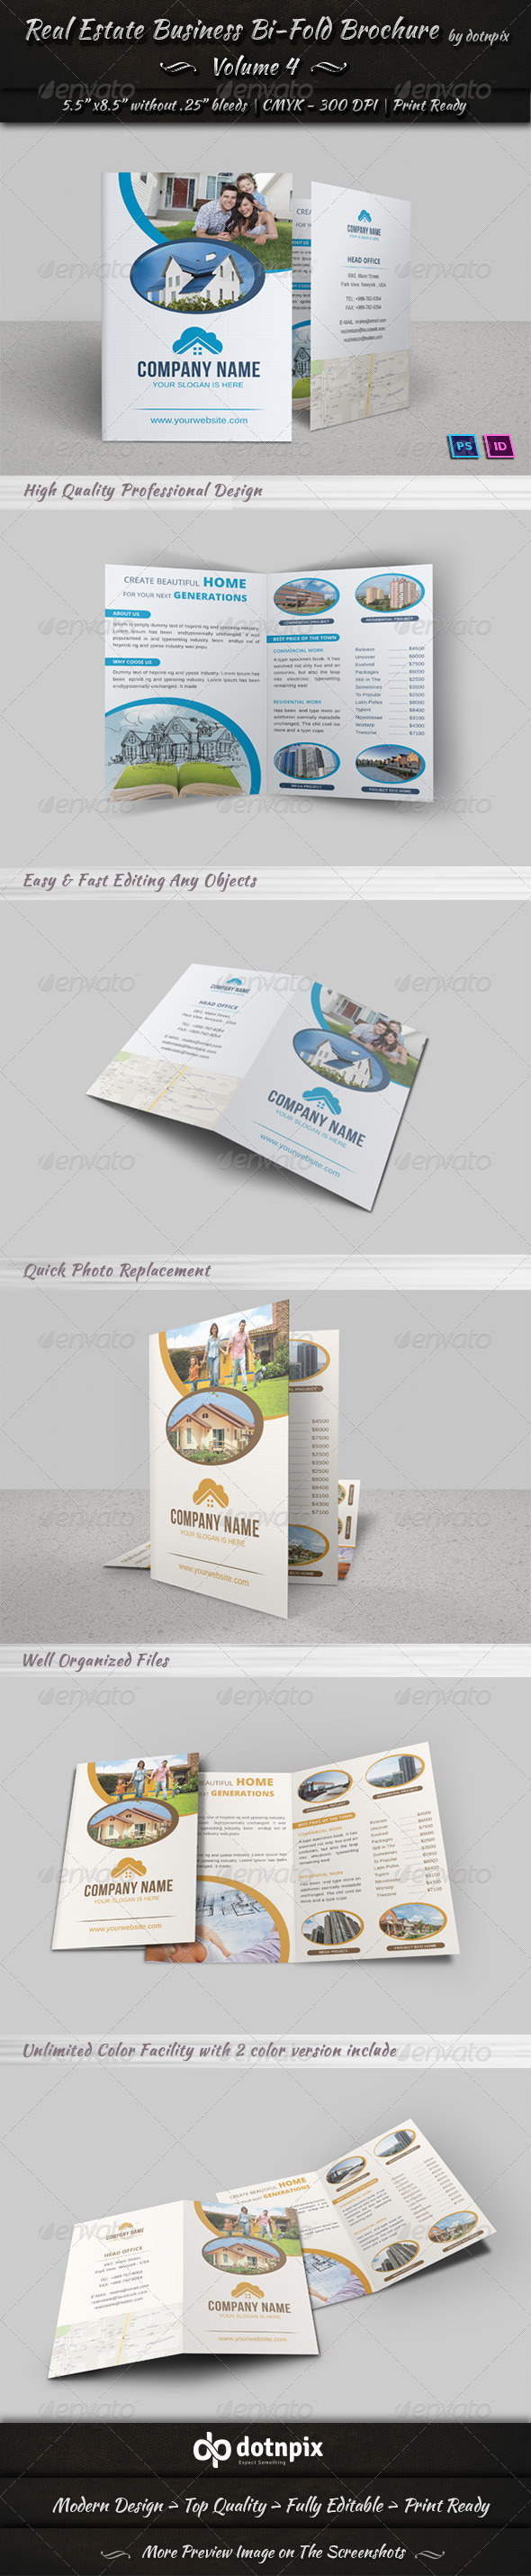 GraphicRiver Real Estate Business Bi-Fold Brochure Volume 4 6584127